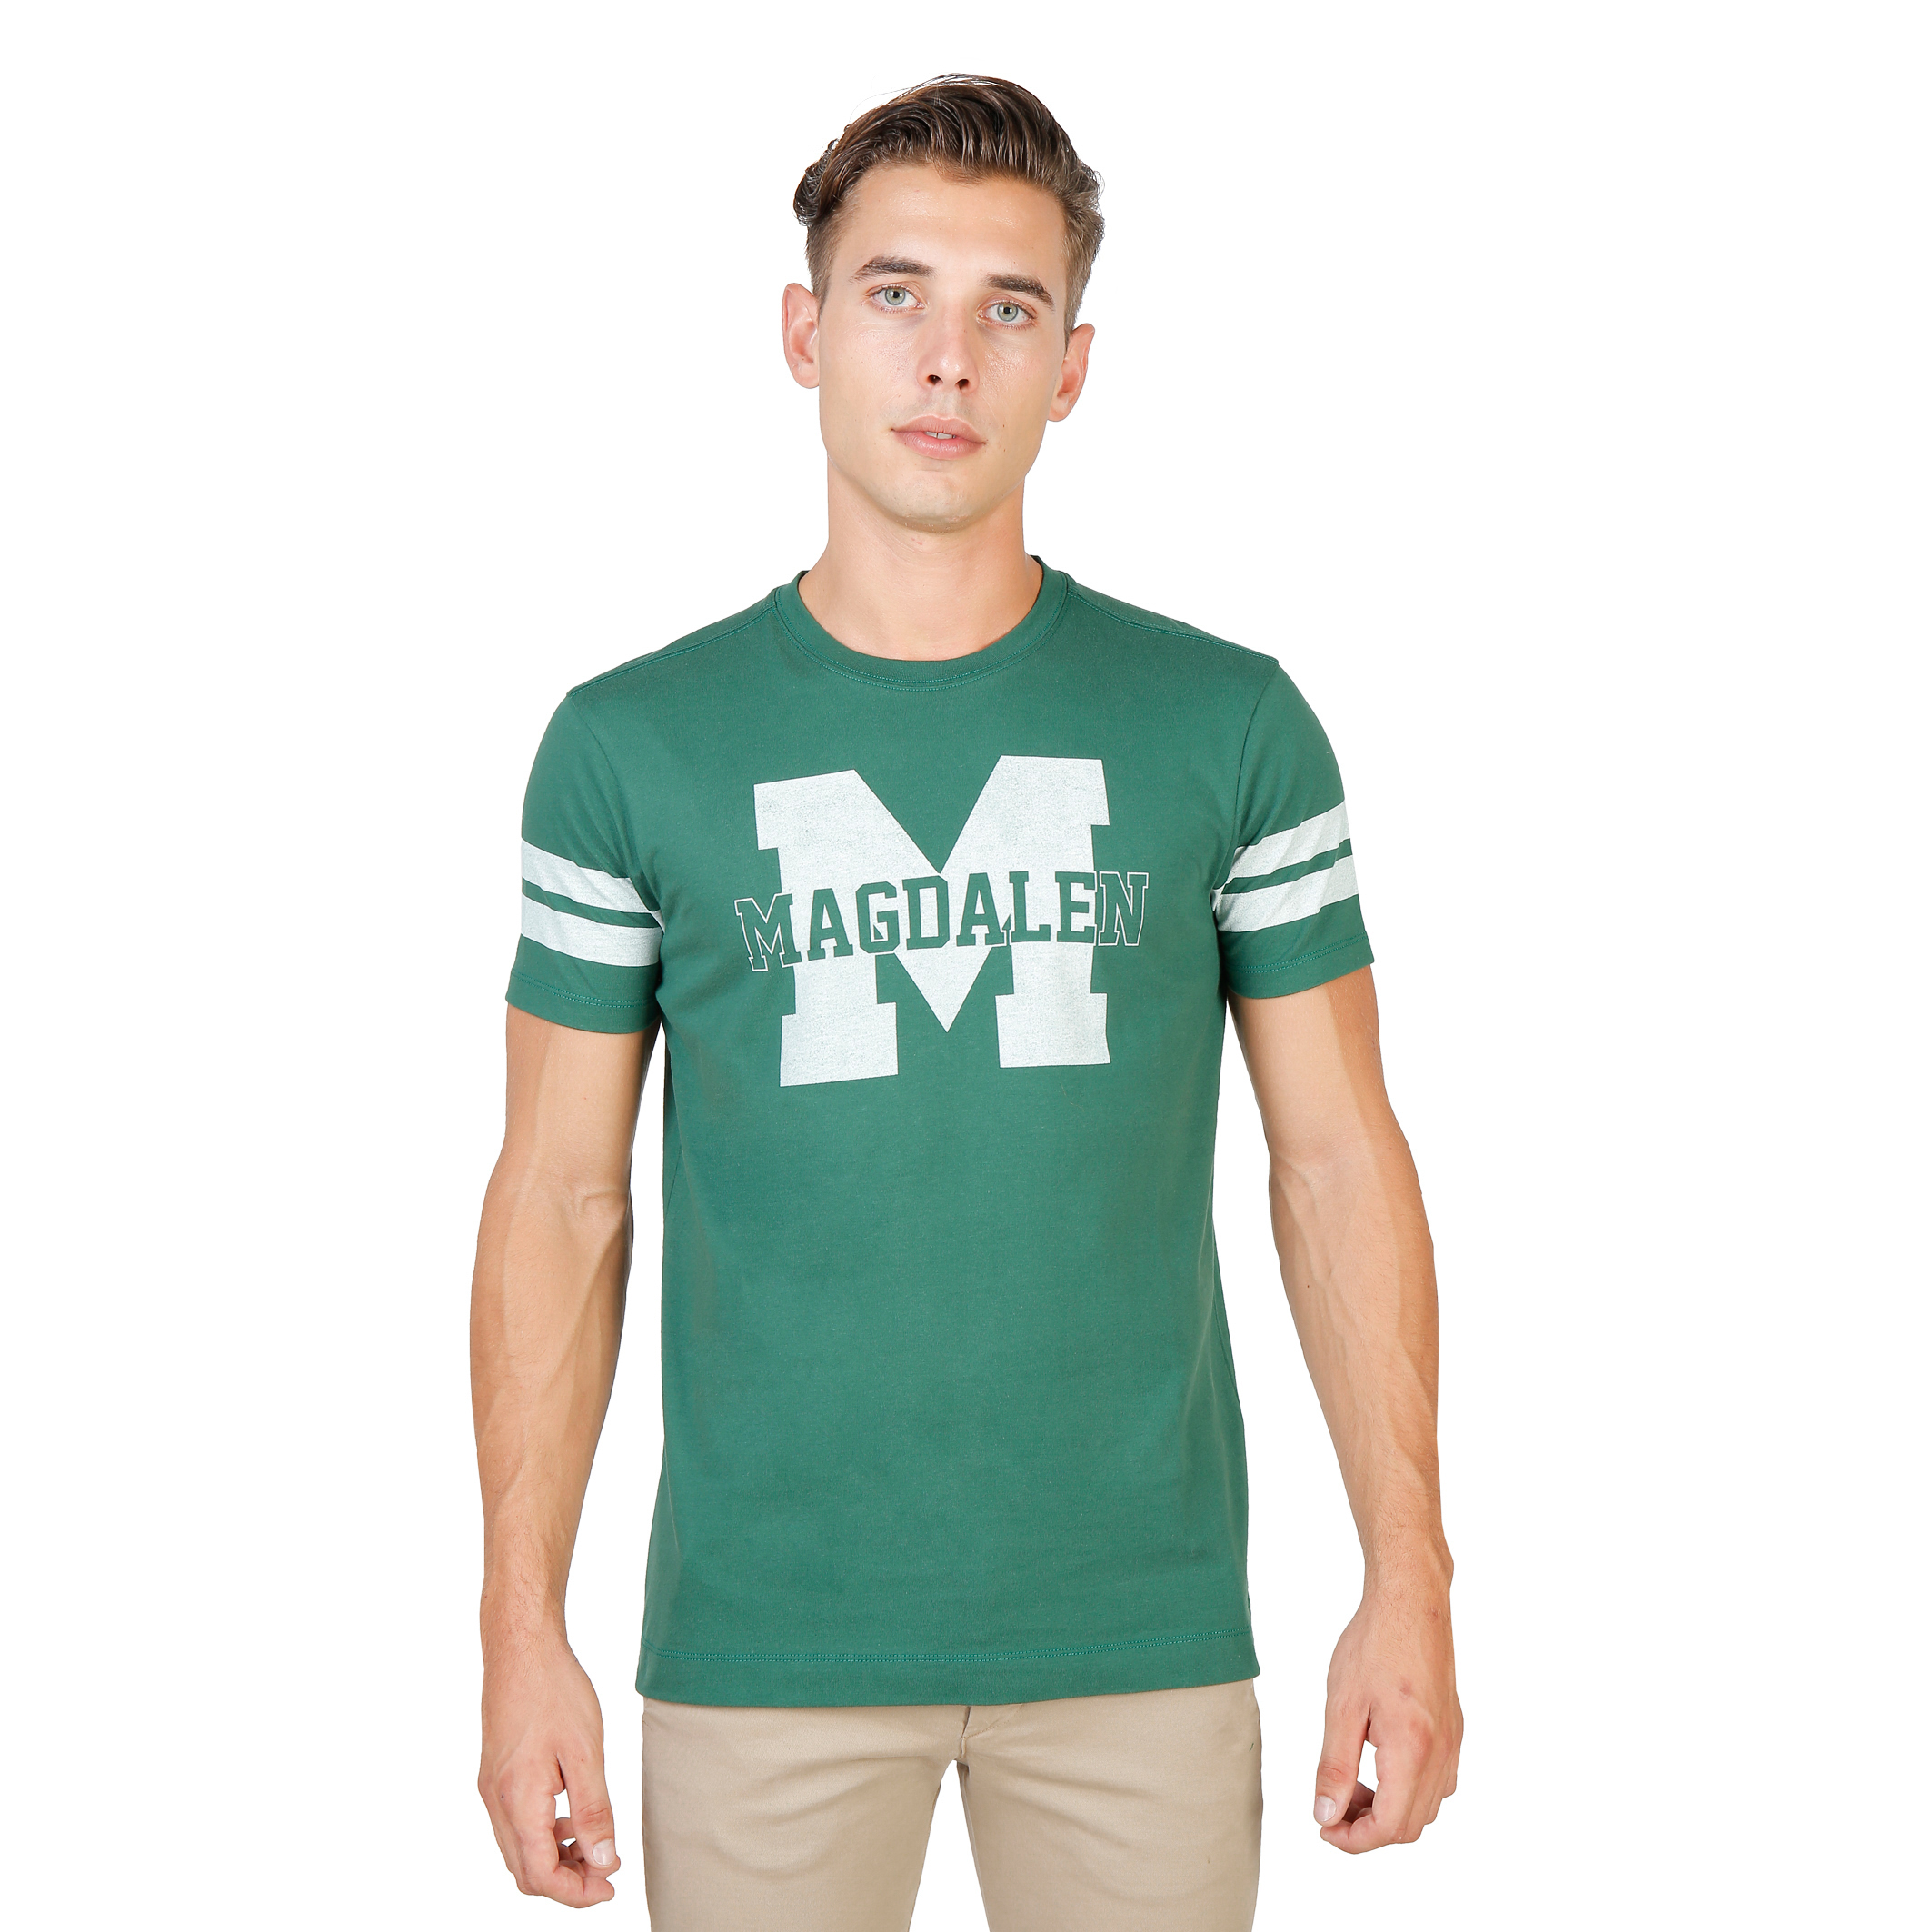 Tee-shirts  Oxford University MAGDALEN-STRIPED-MM green